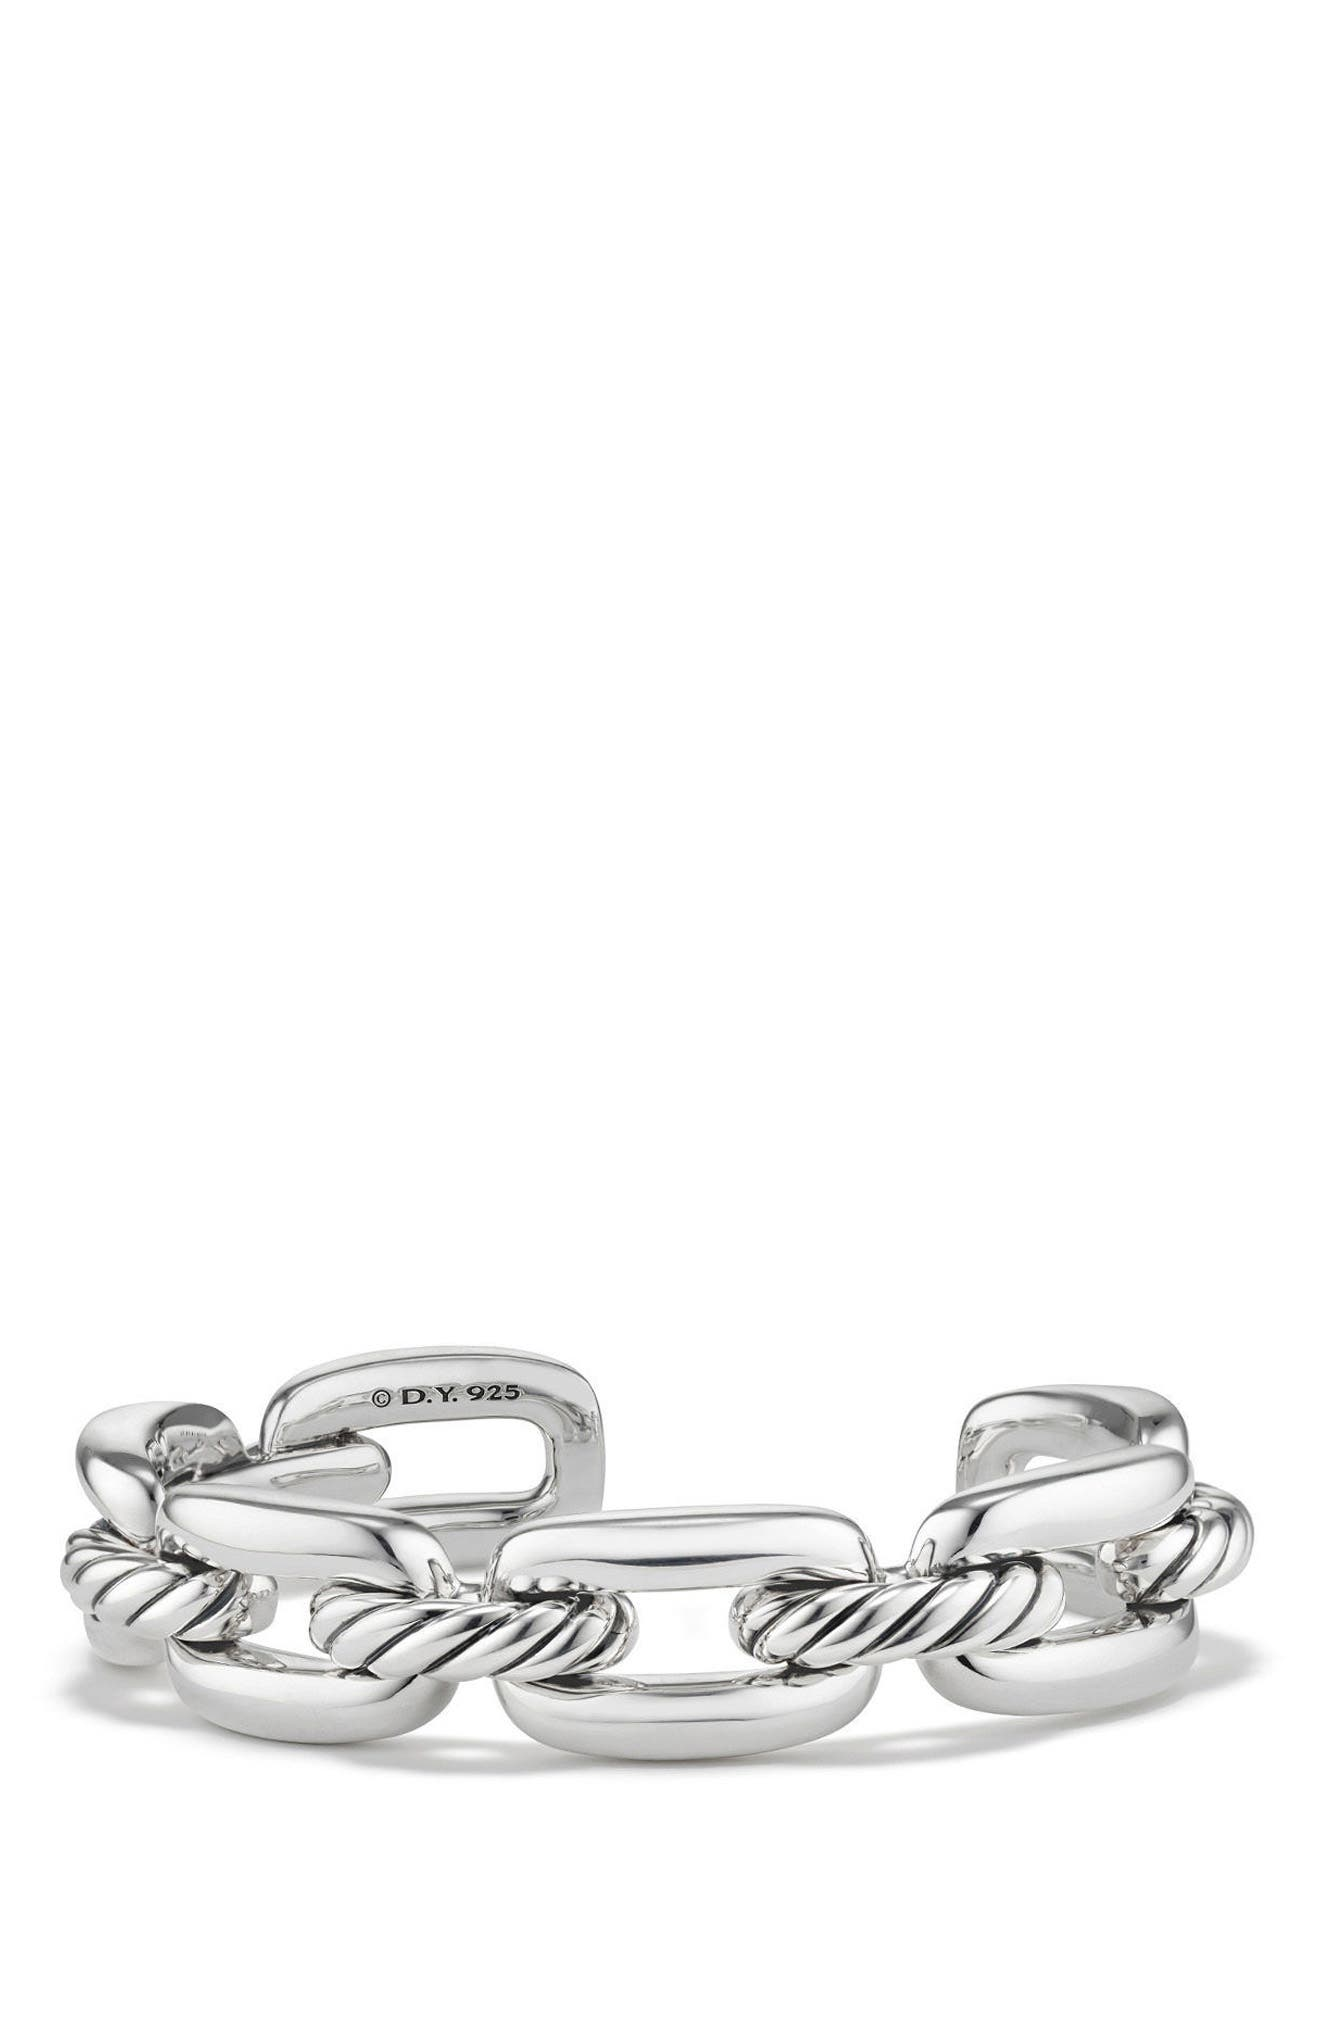 Wellesley Chain Link Cuff Bracelet,                             Main thumbnail 1, color,                             SILVER